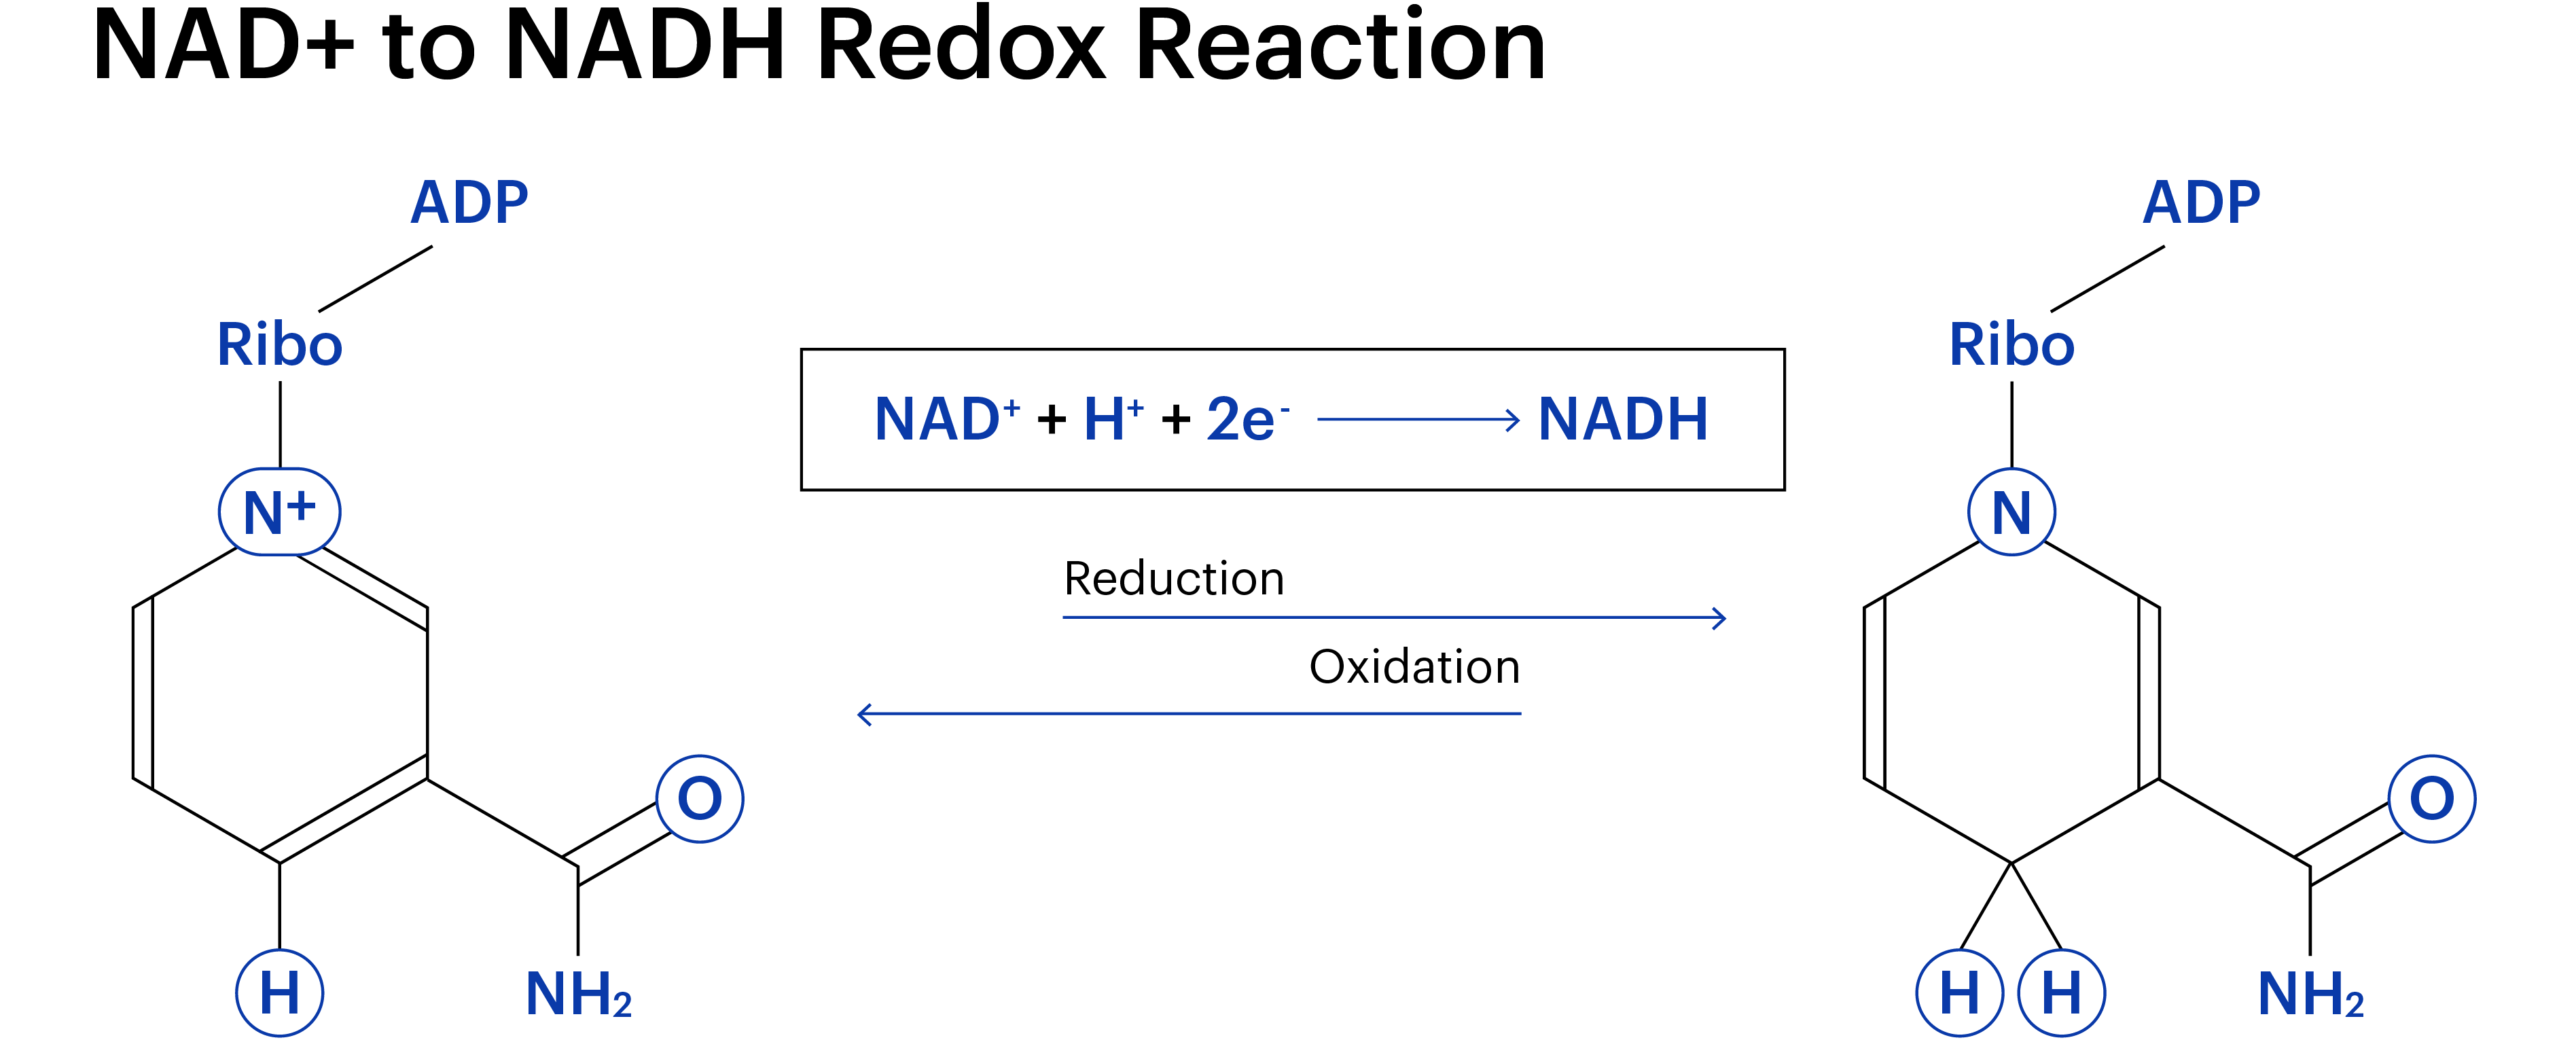 Nadnadh Celldiagrams Artboard 1